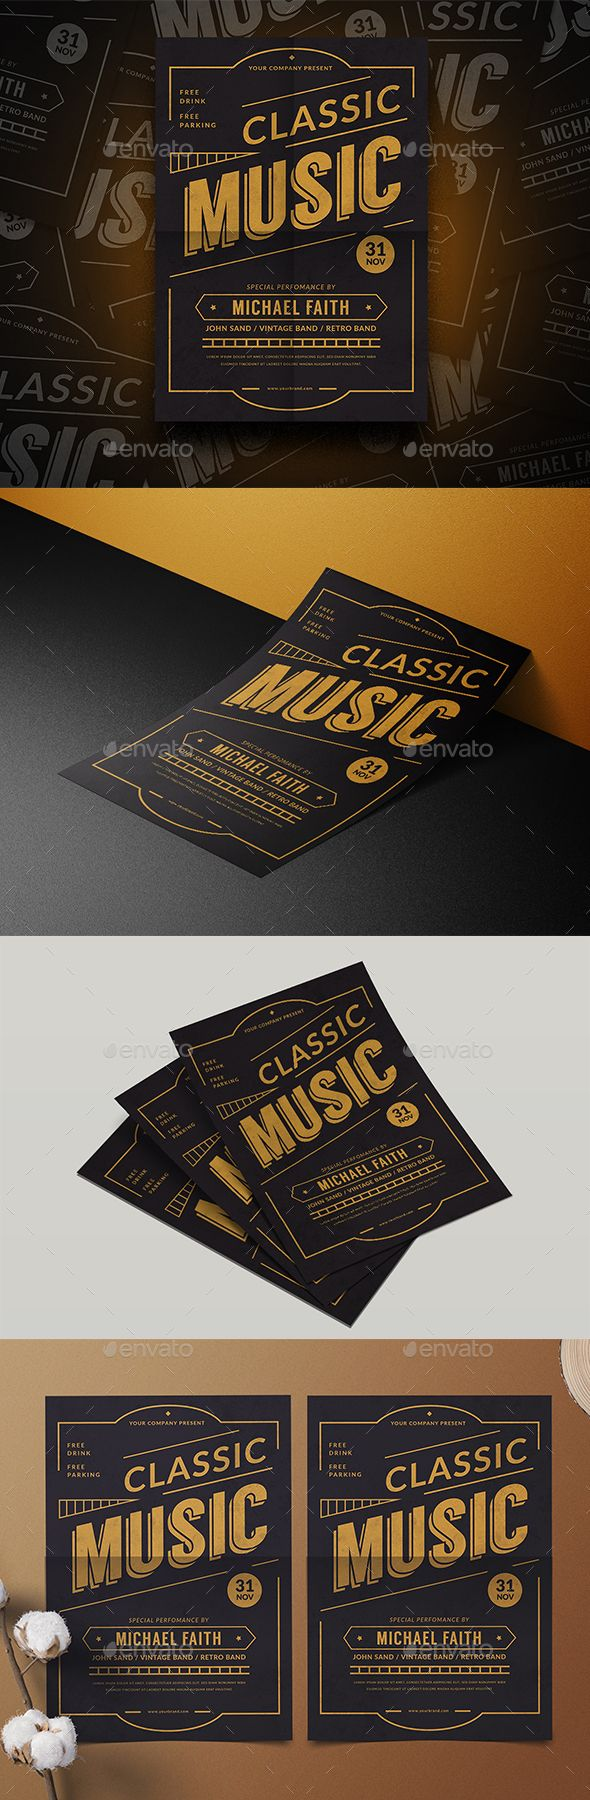 Music Classic Flyer Template PSD, AI Illustrator